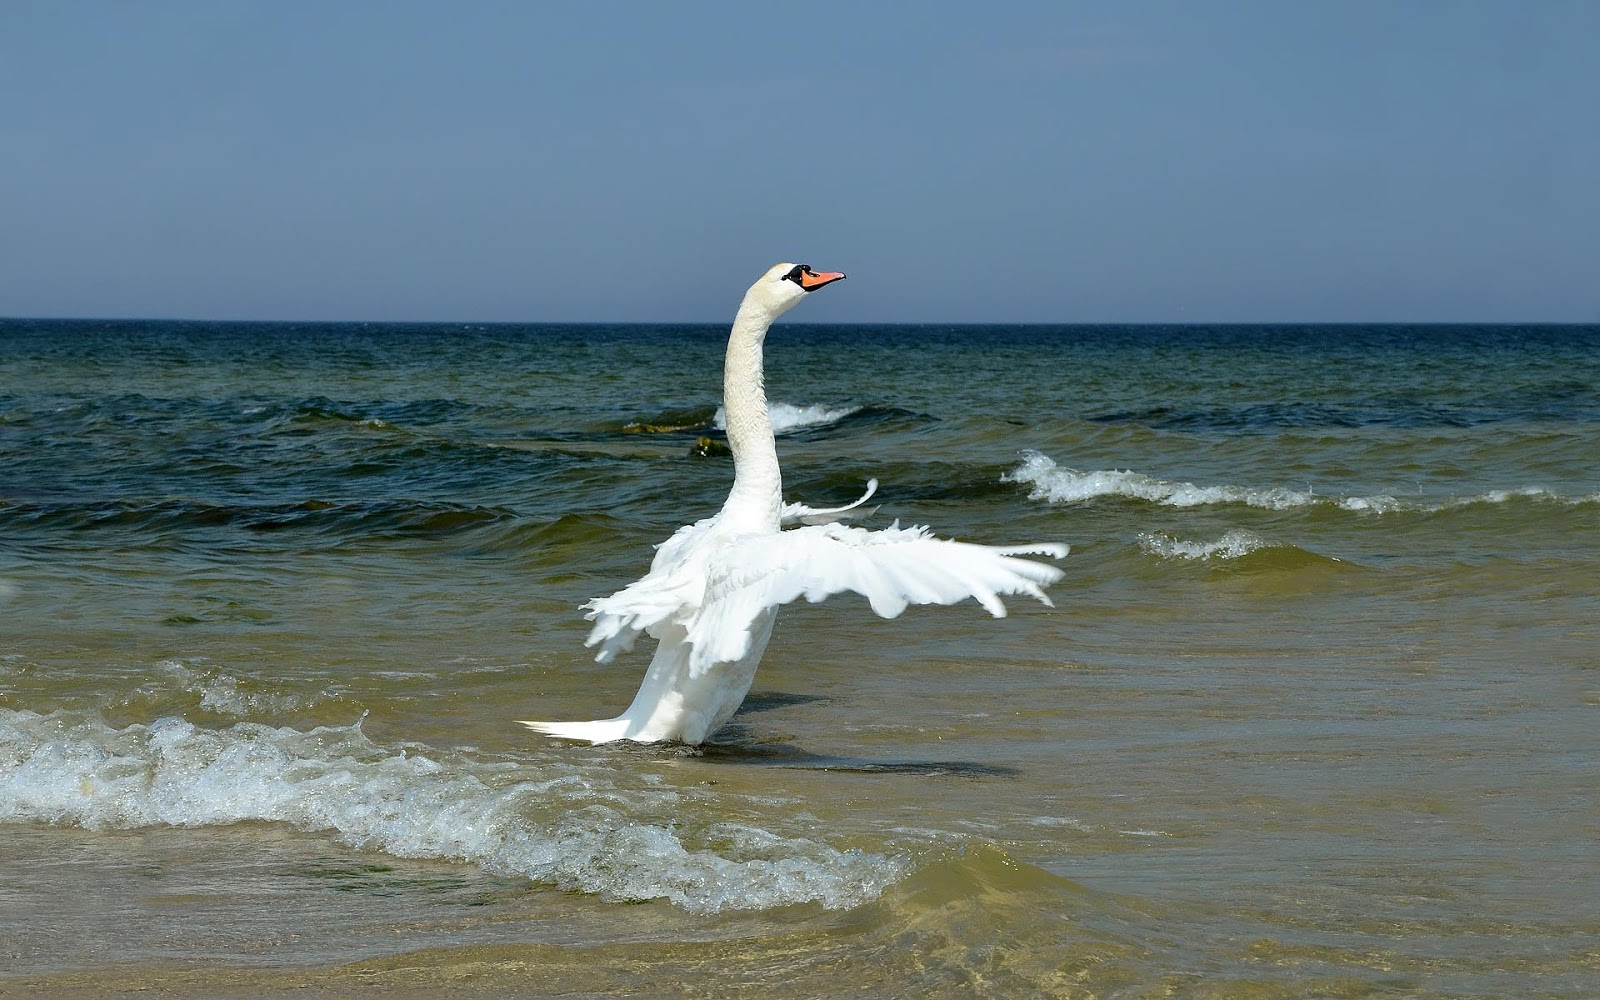 http://2.bp.blogspot.com/-qCRYDHS6Ynw/UNWFNa-WYVI/AAAAAAAAJdA/zIvTPzEh-Io/s1600/hd-animal-wallpaper-of-a-white-swan-flapping-his-wings-at-the-beach-hd-swans-wallpapers.jpg